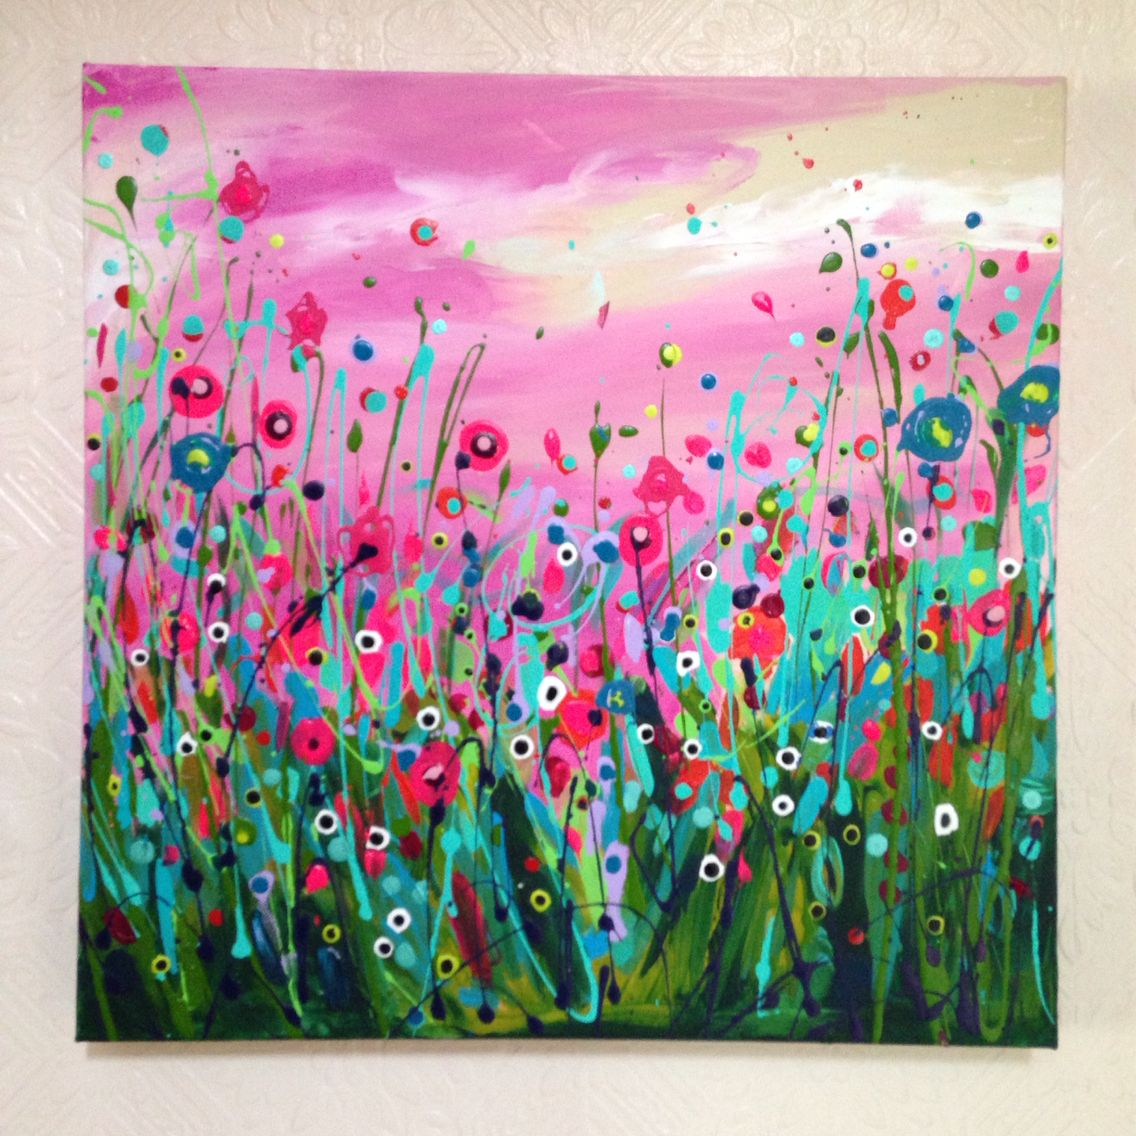 Light Up My Life 50x50cm Abstract Acrylic Floral Flower Field